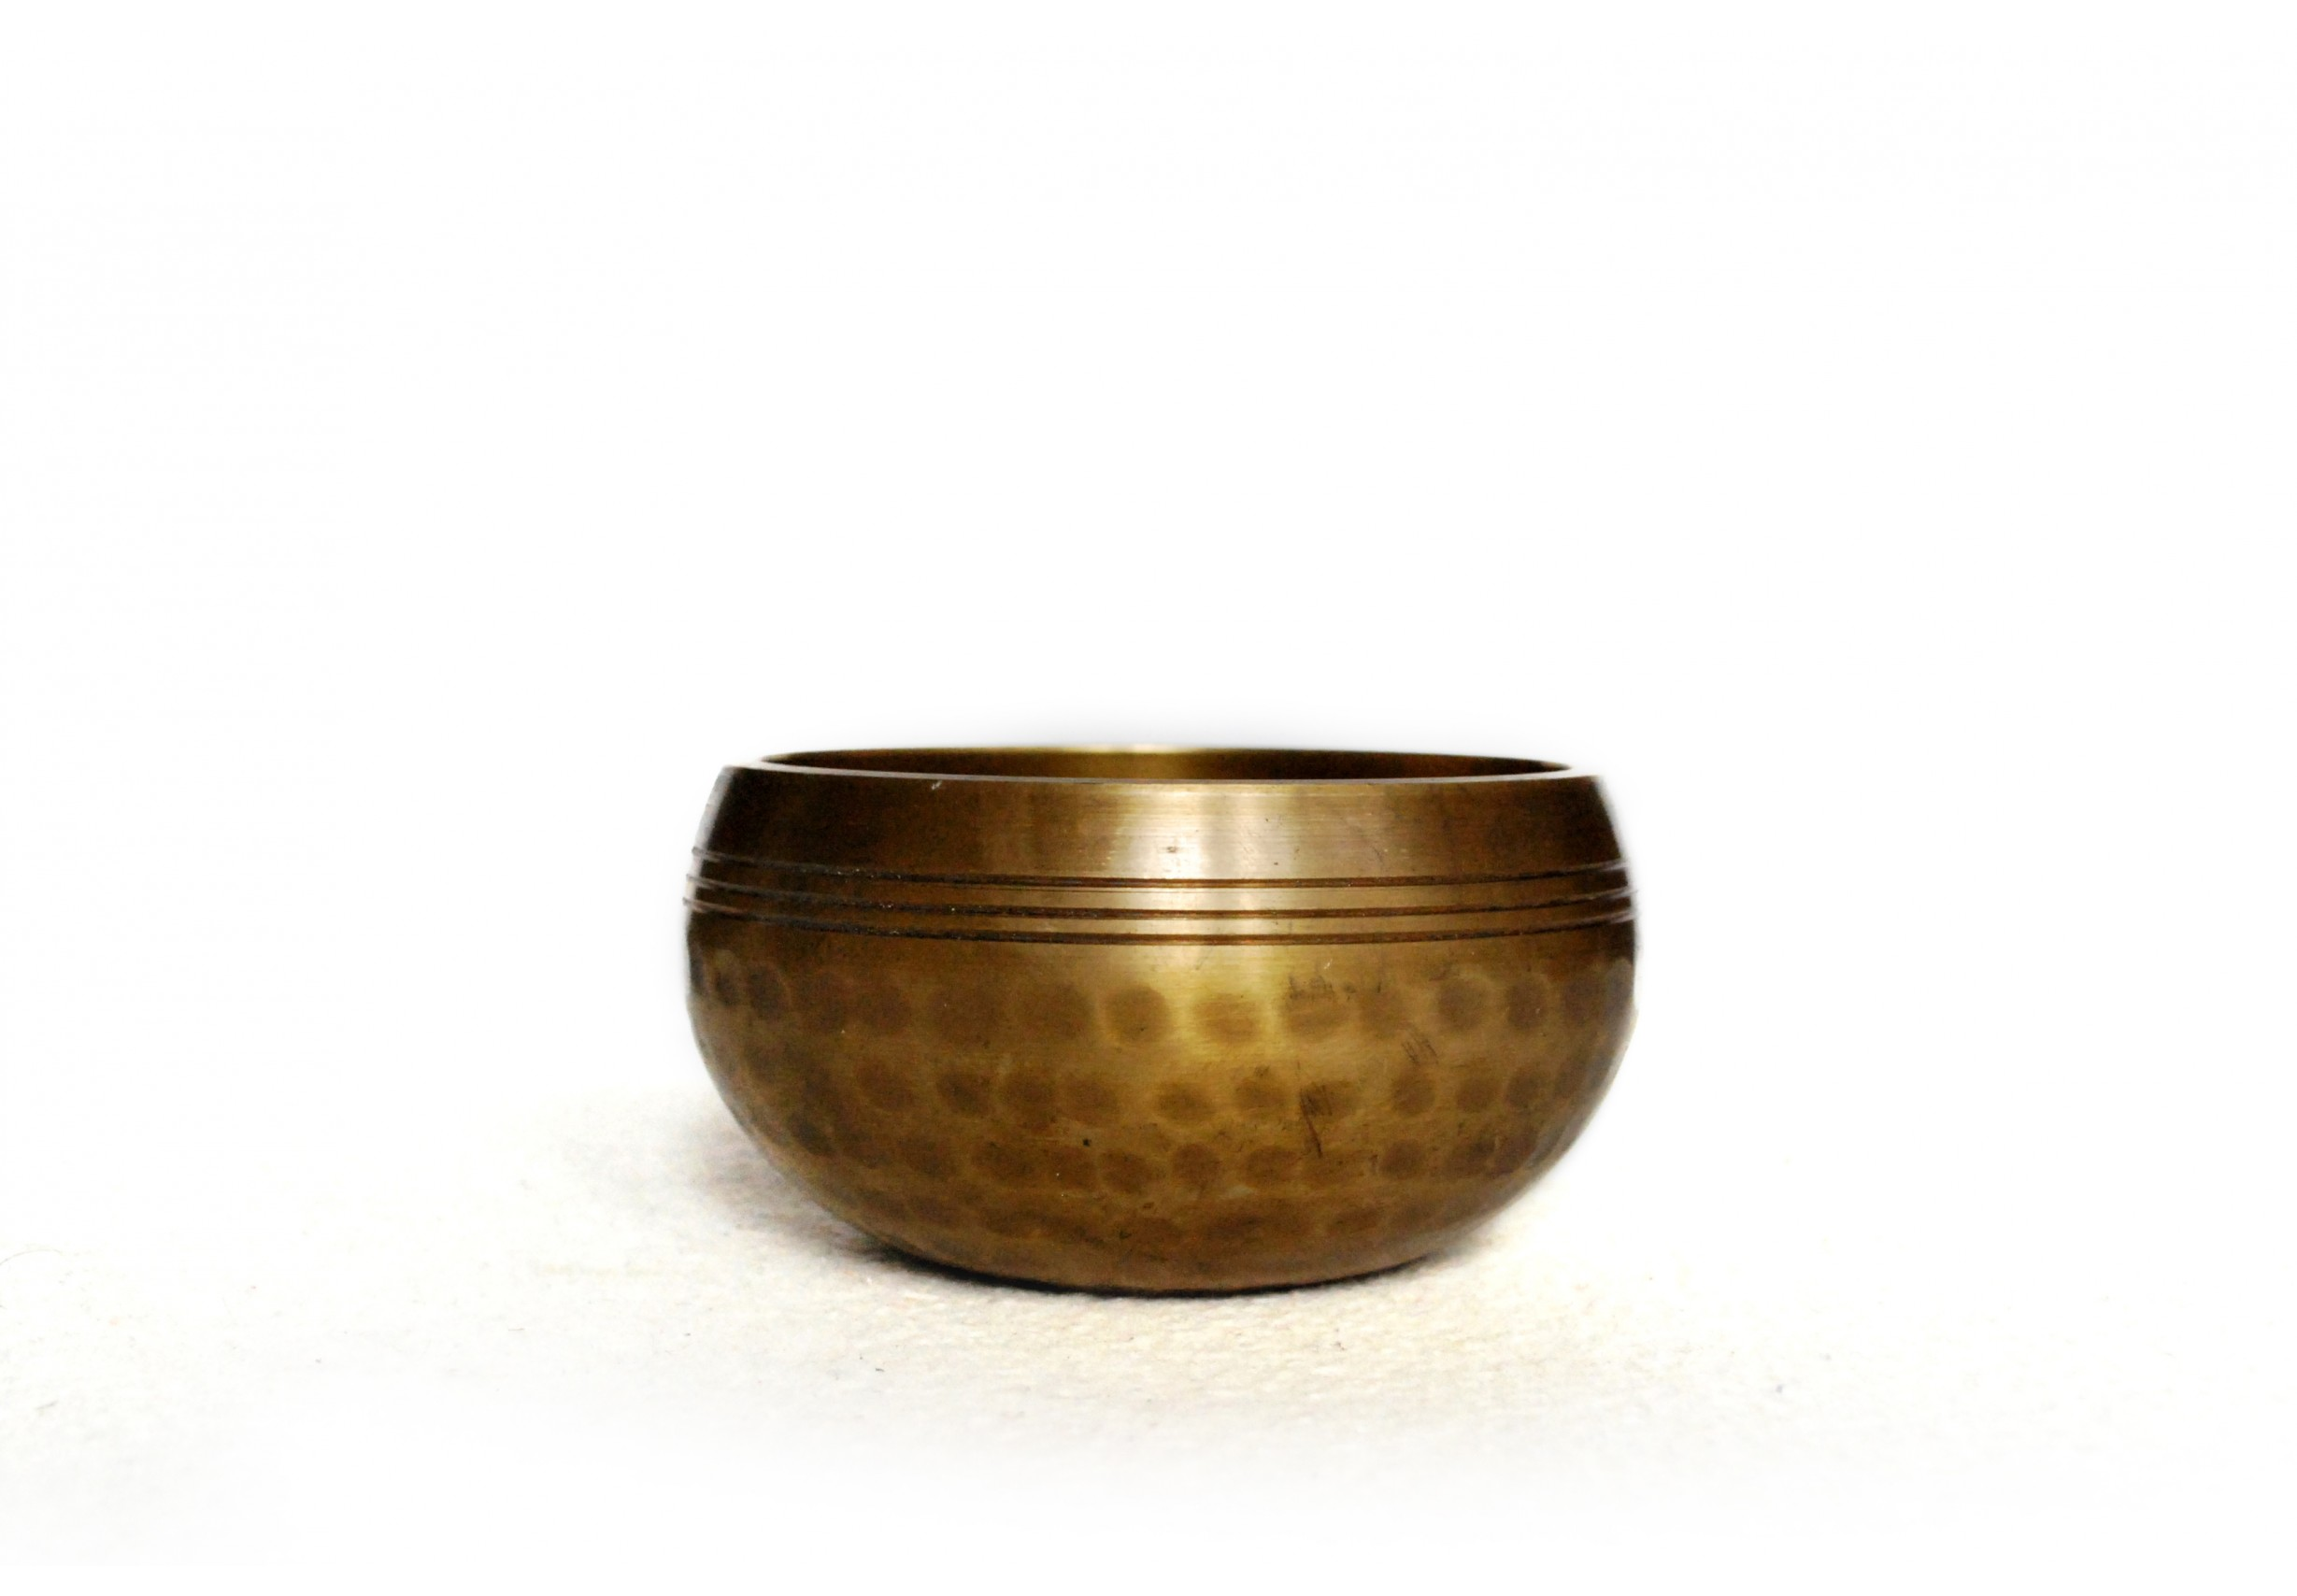 Tibetan singing bowl - 3.7 inches